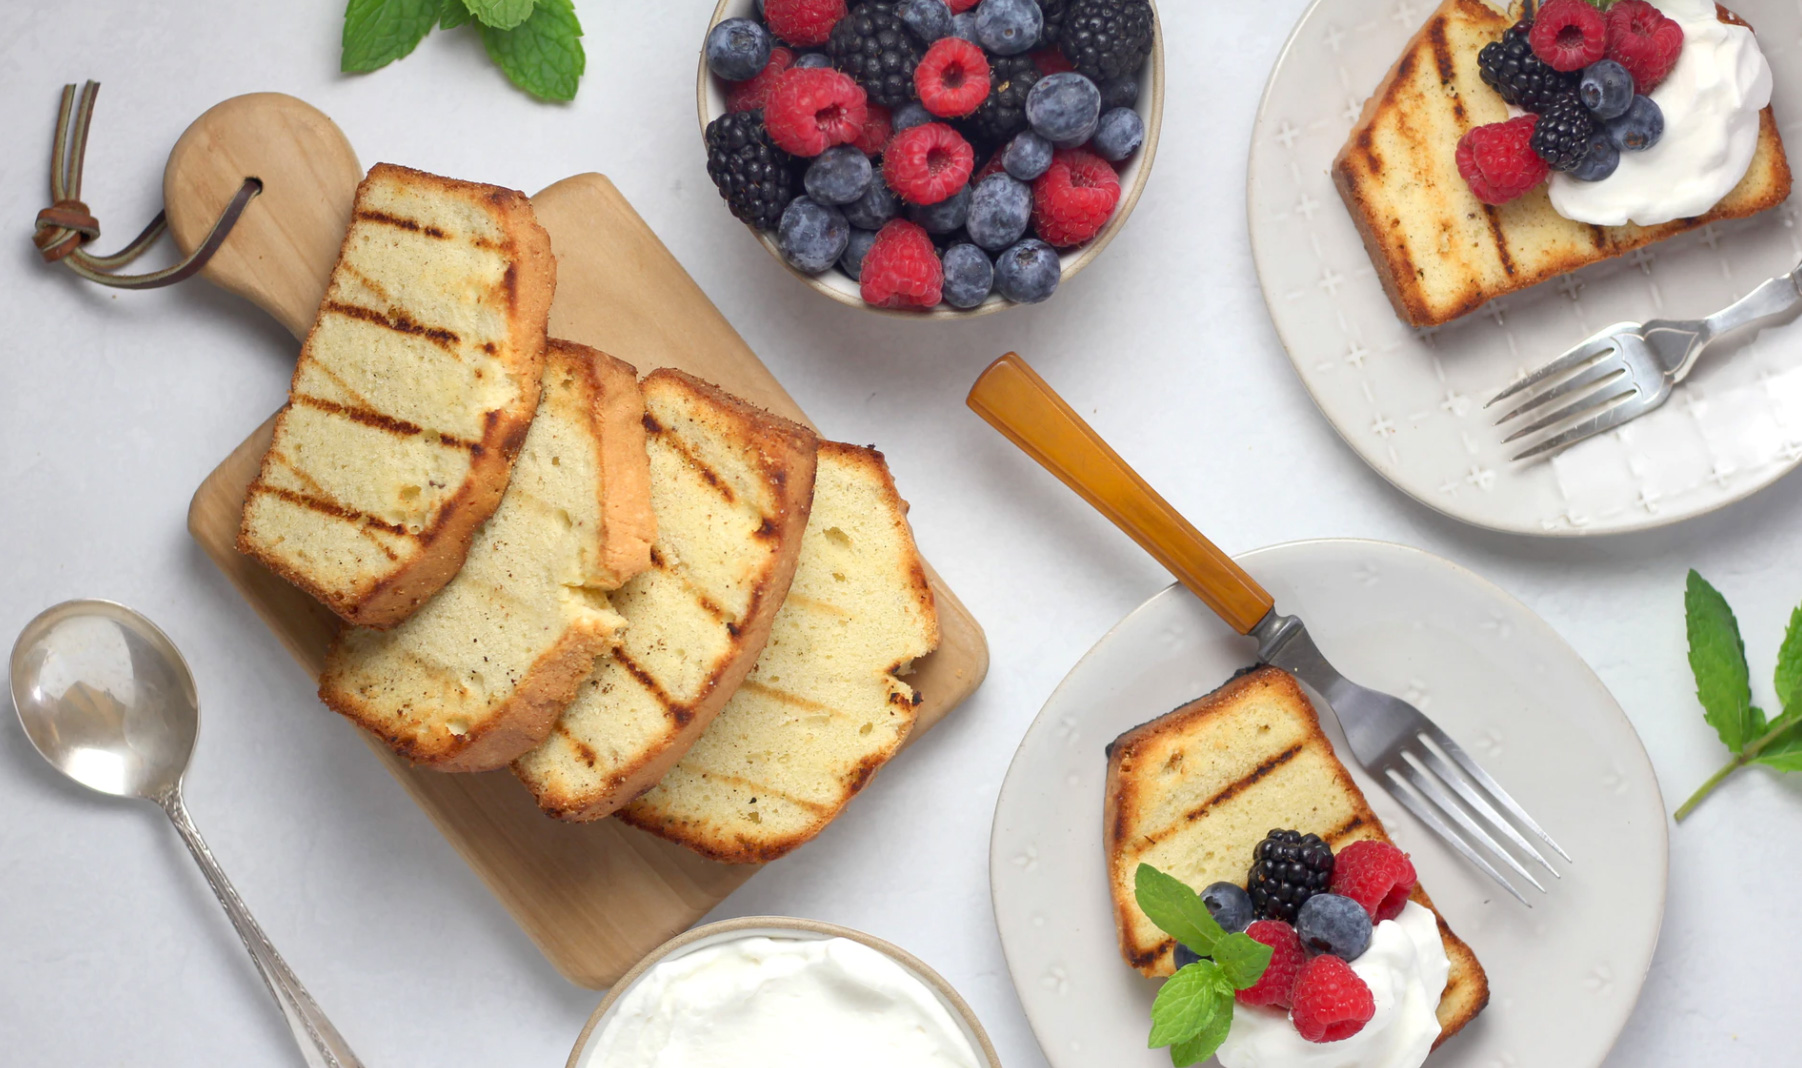 French toast with fruits and cream